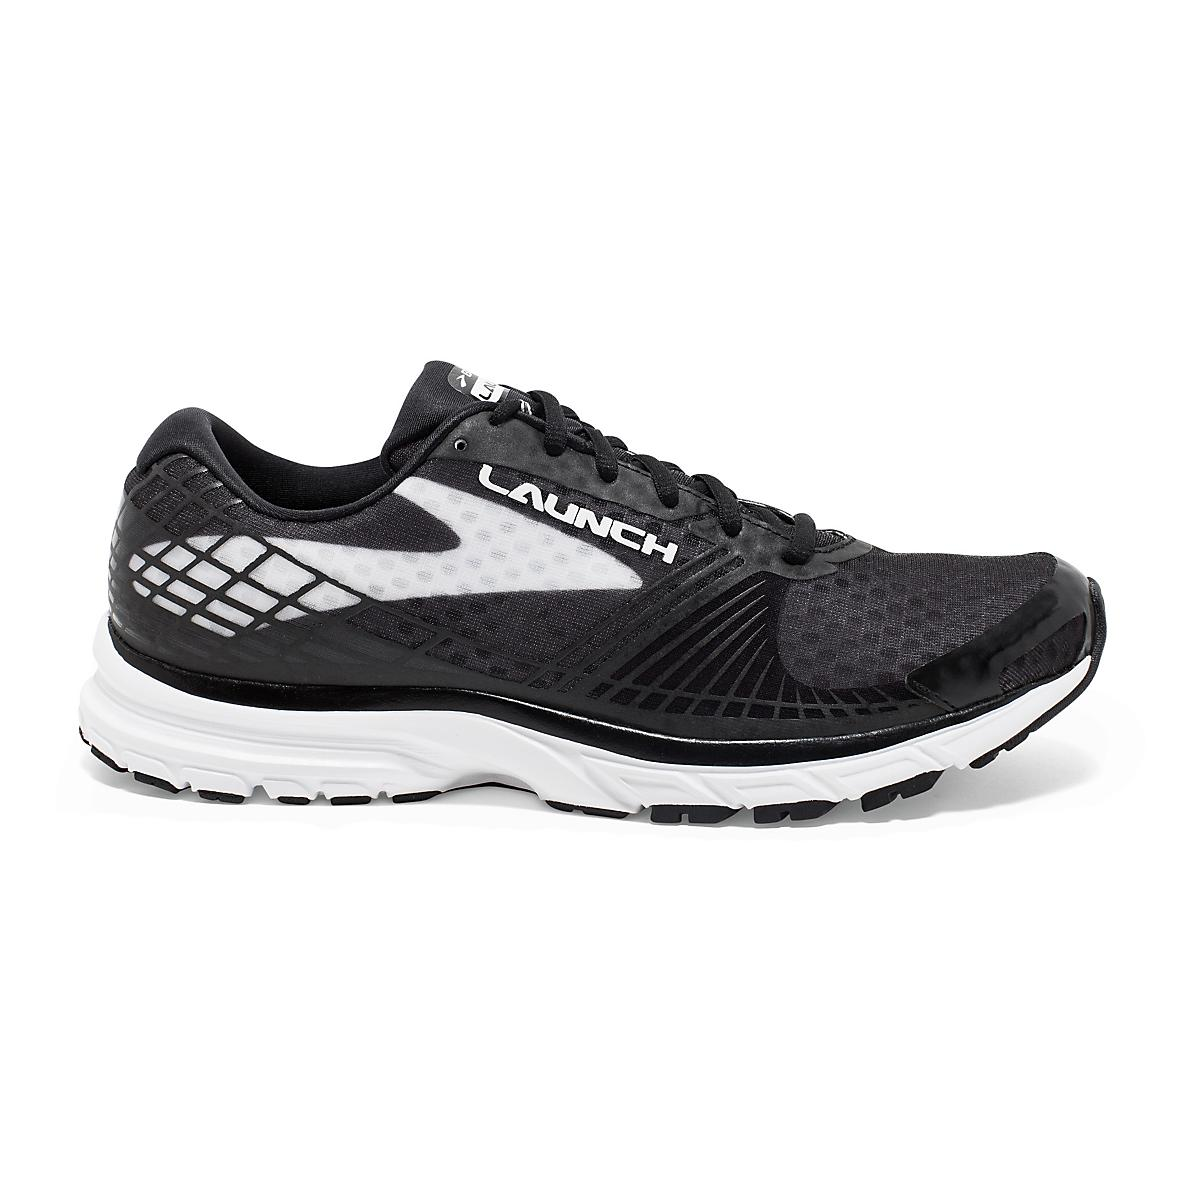 5080595291ae9 Mens Brooks Launch 3 Running Shoe at Road Runner Sports